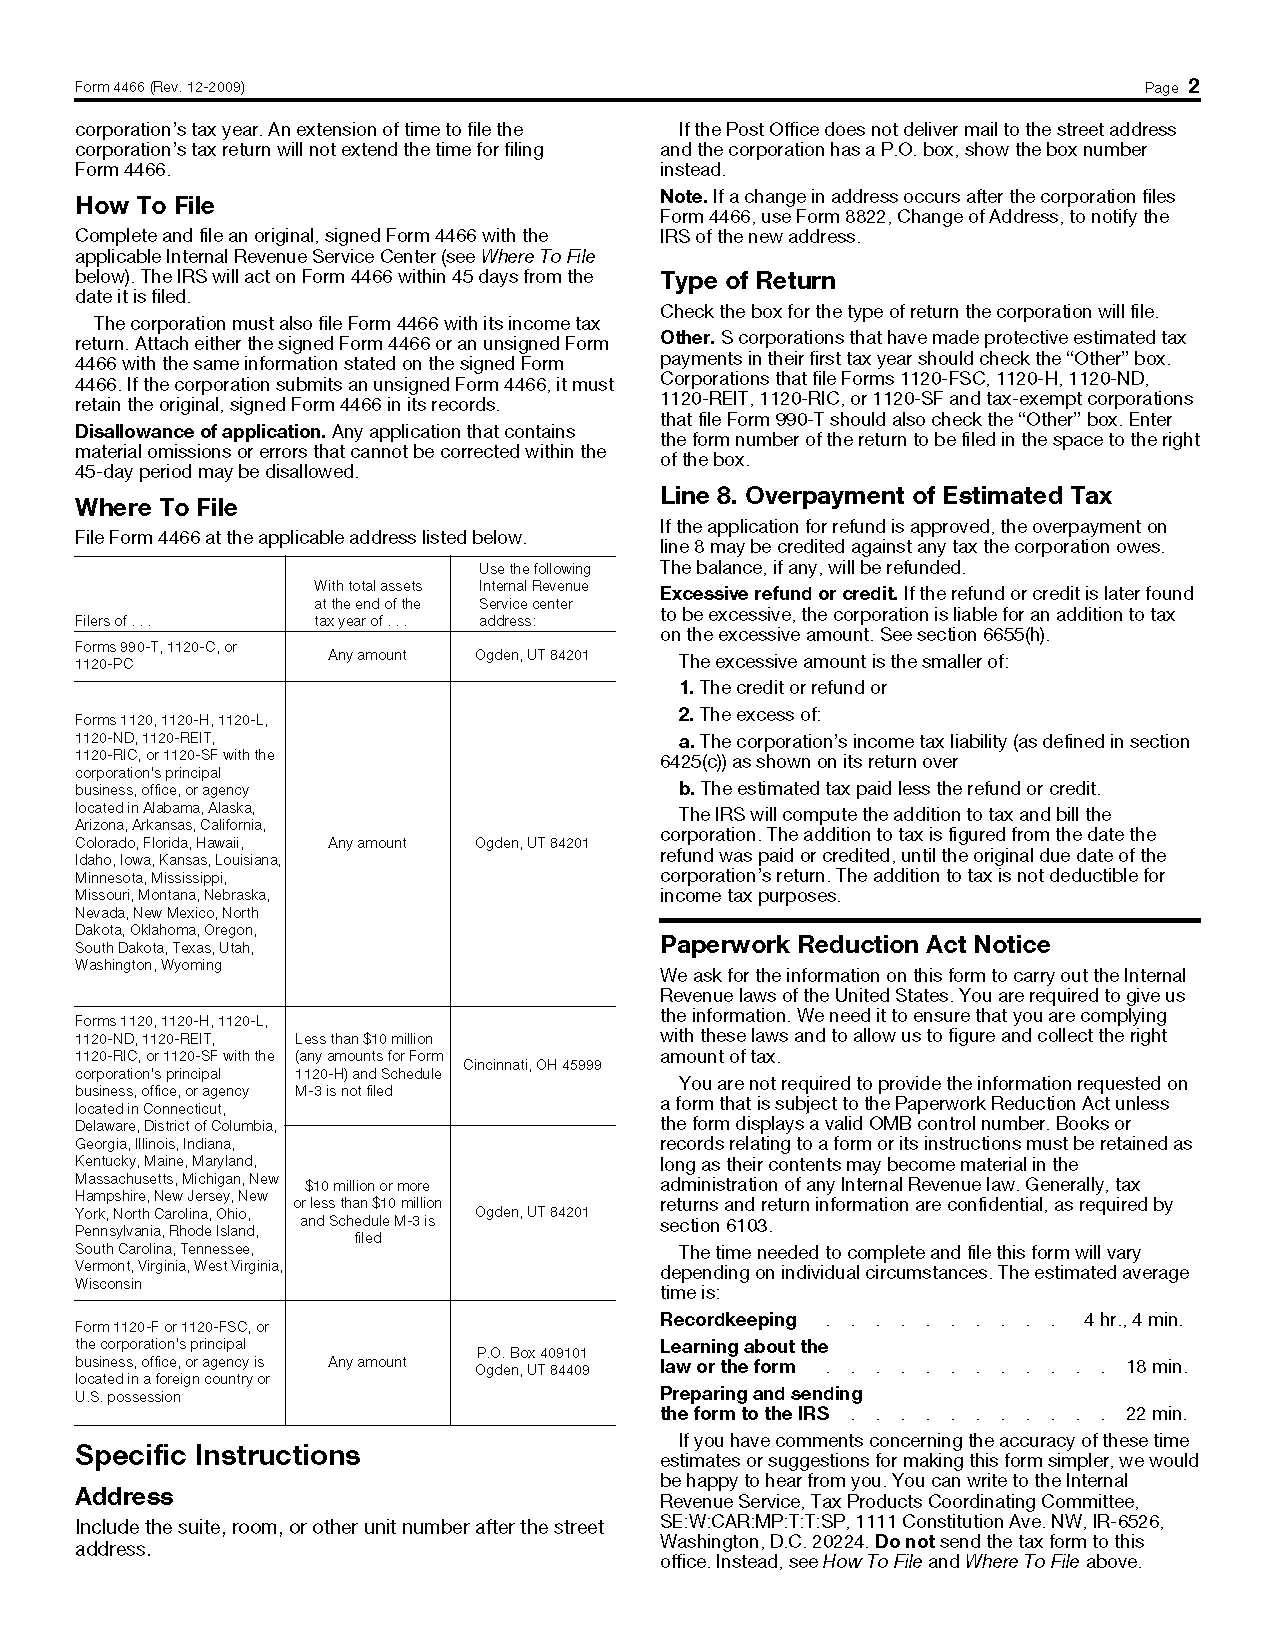 form  corporation application  quick refund 1275 x 1650 · png